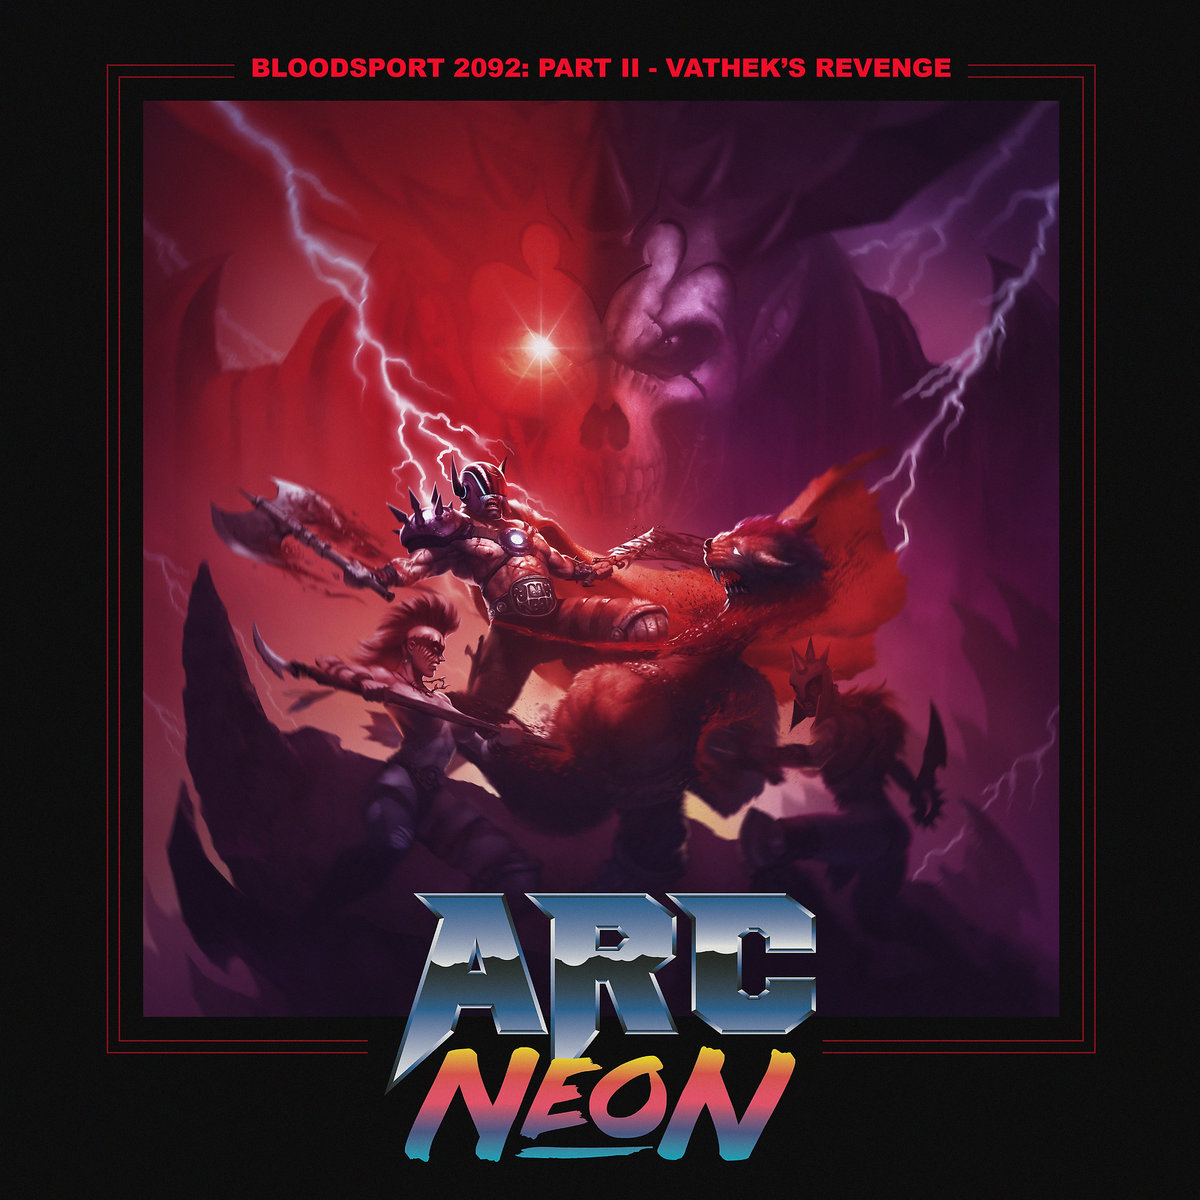 by Arc Neon